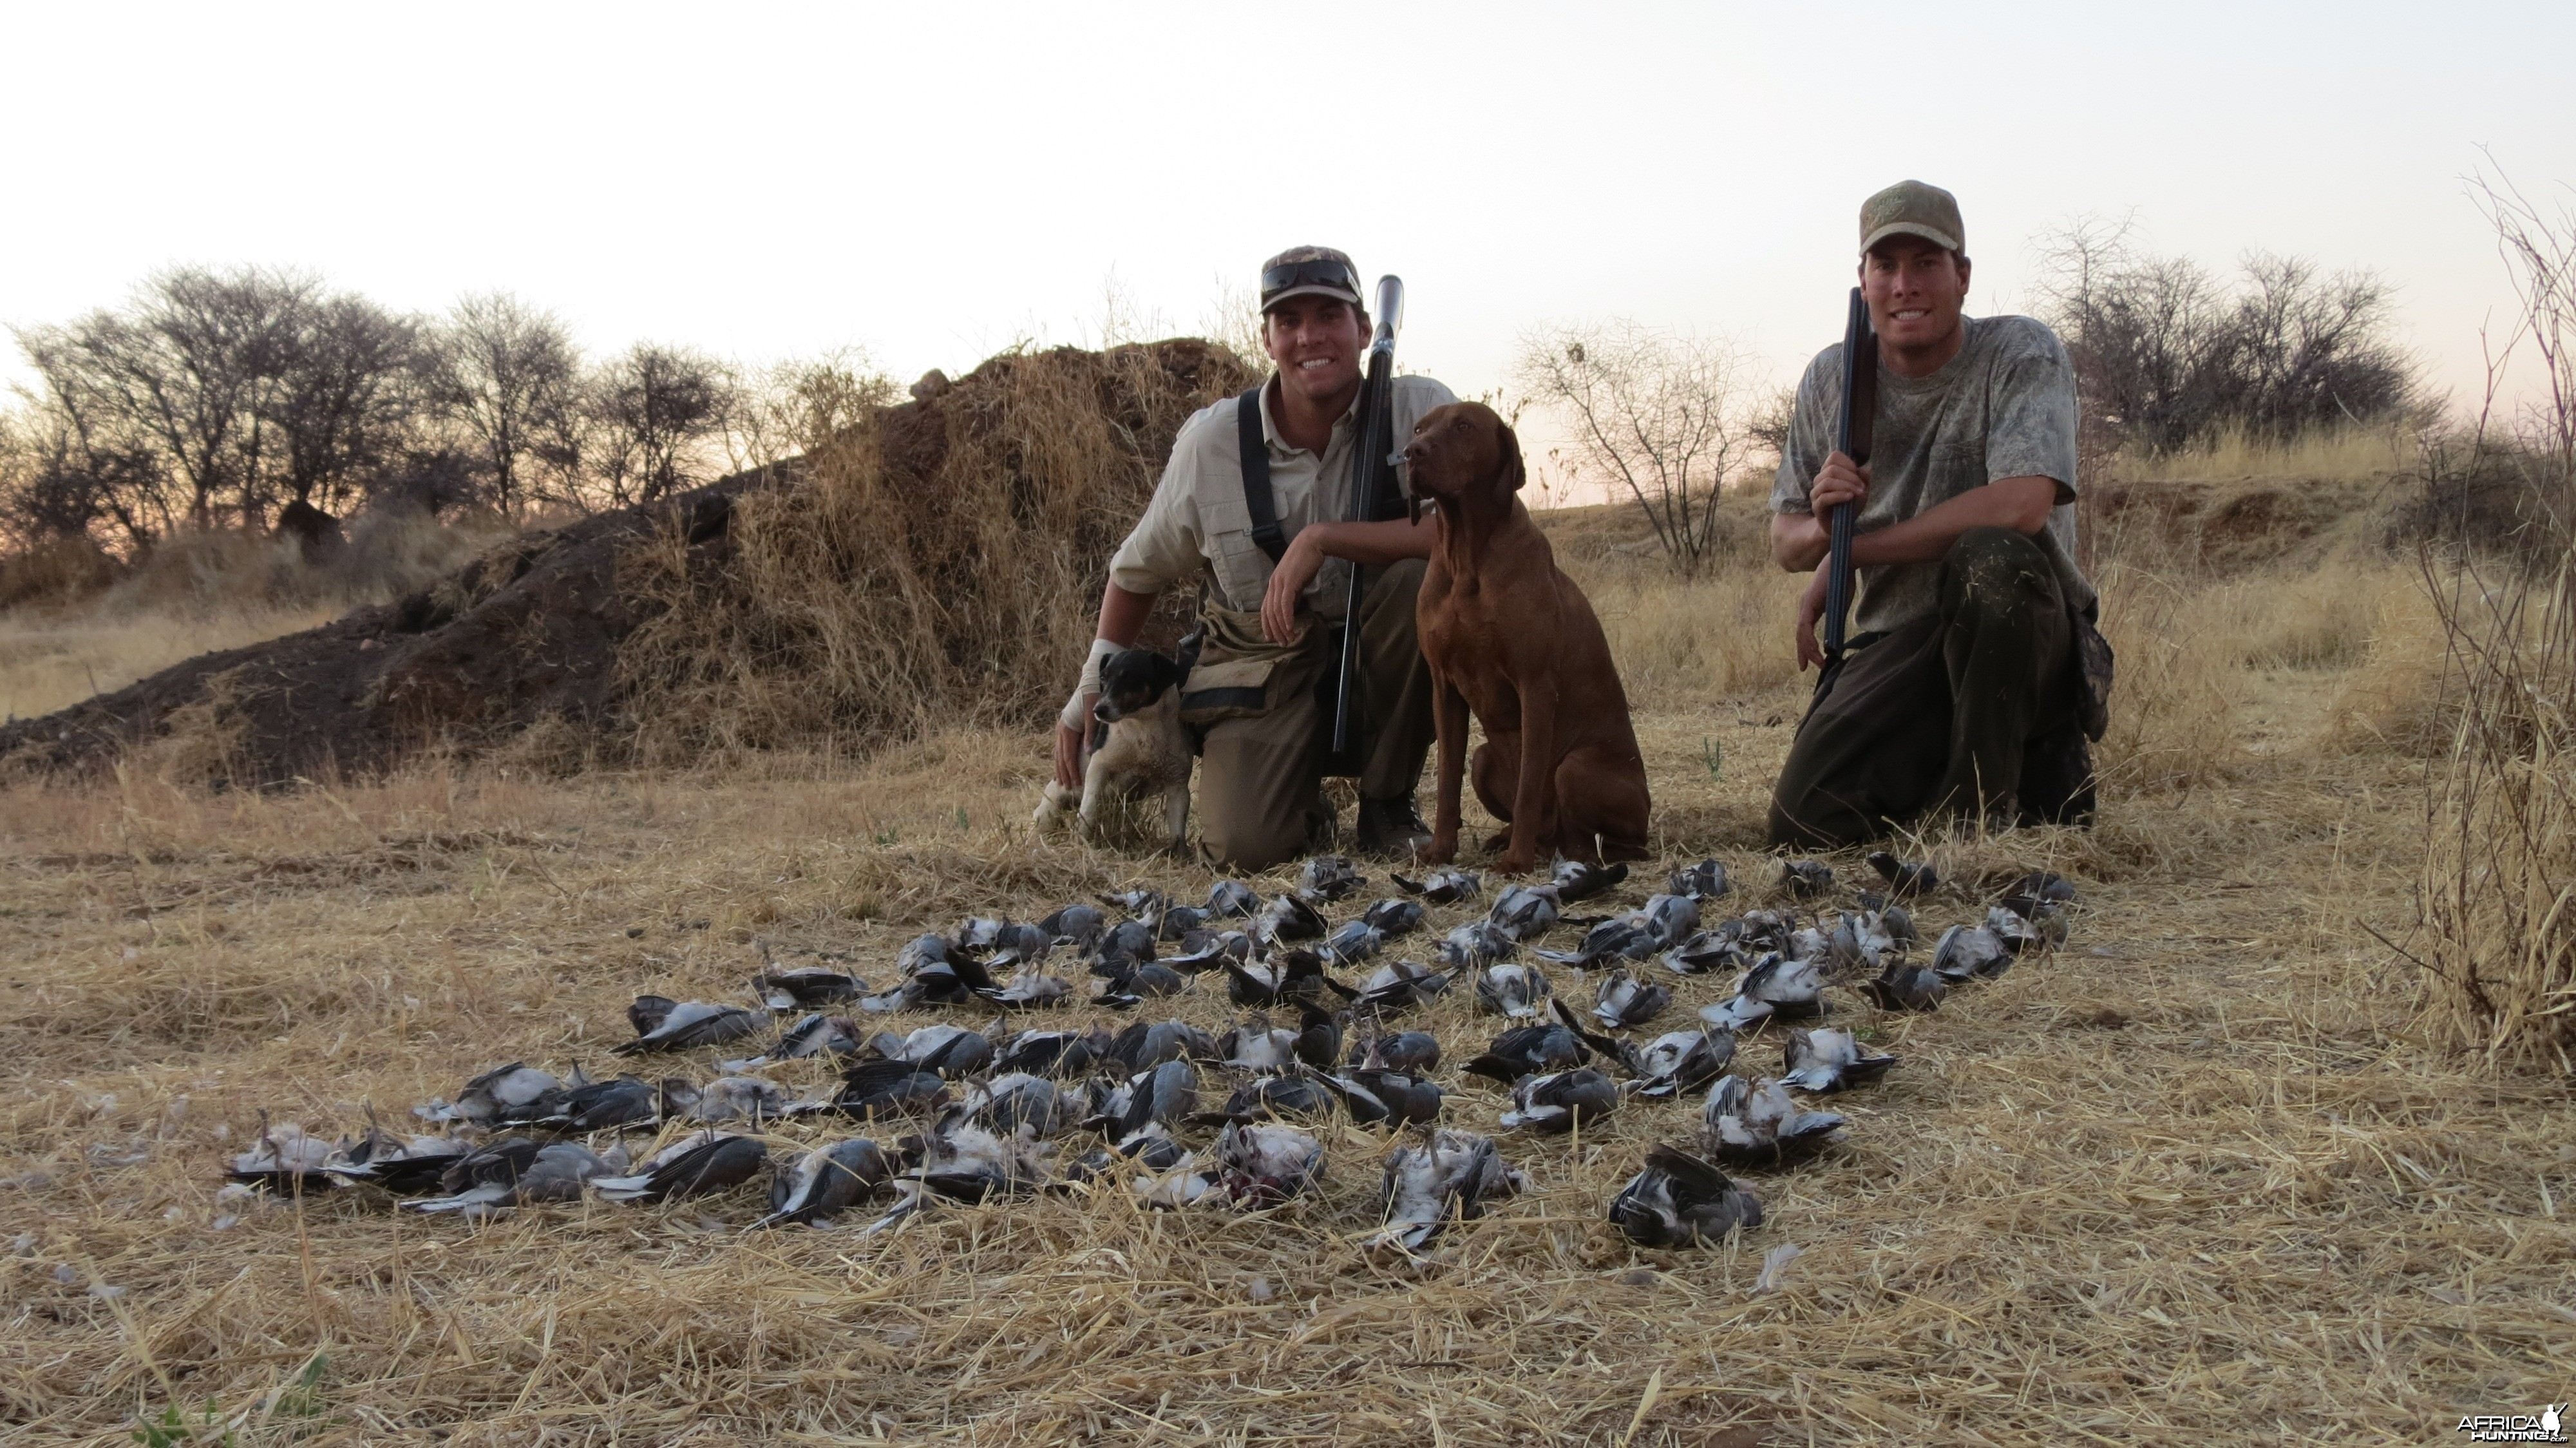 Doves hunted with Ozondjahe Hunting Safaris in Namibia